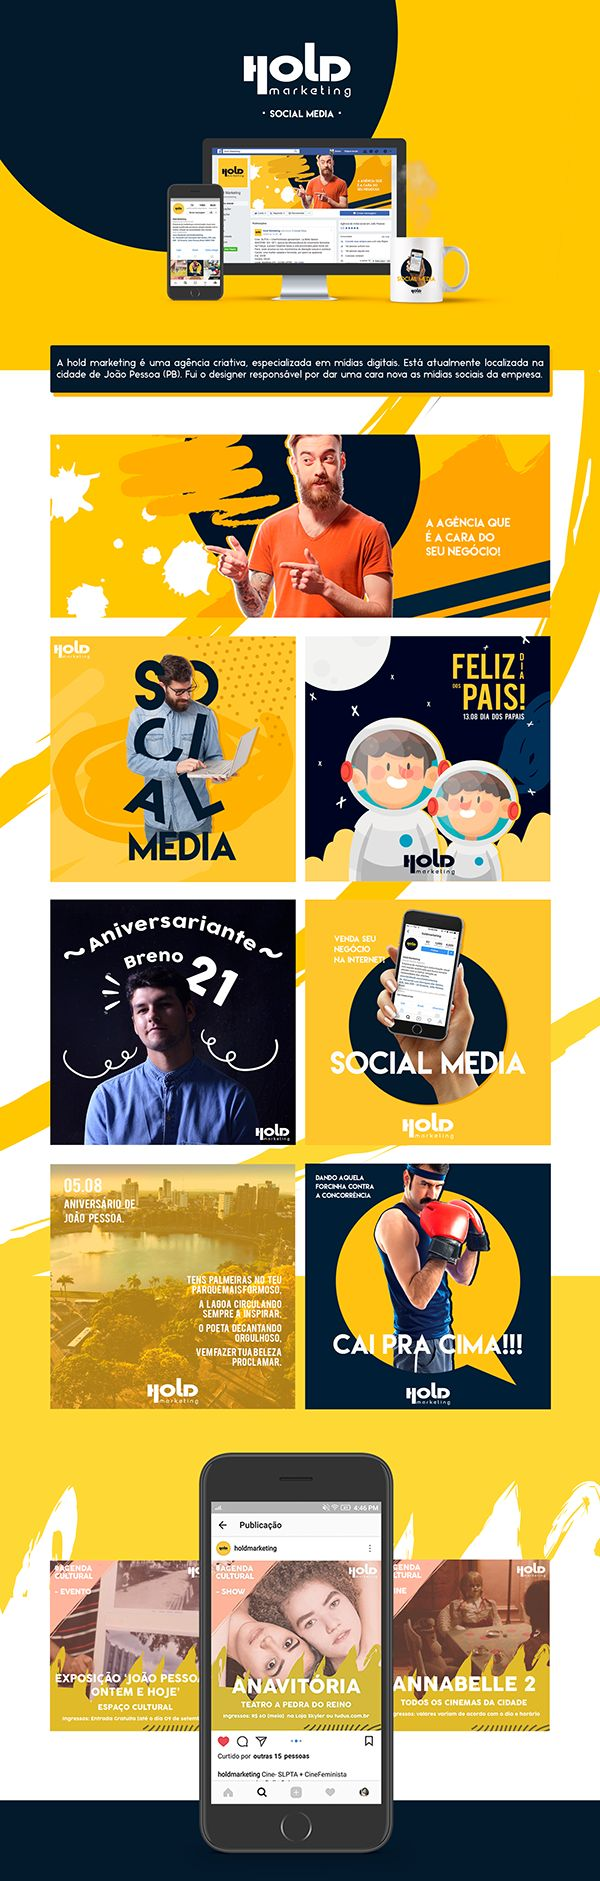 https://www.behance.net/gallery/56137521/Social-Media-Colecao-Hold-Marketing